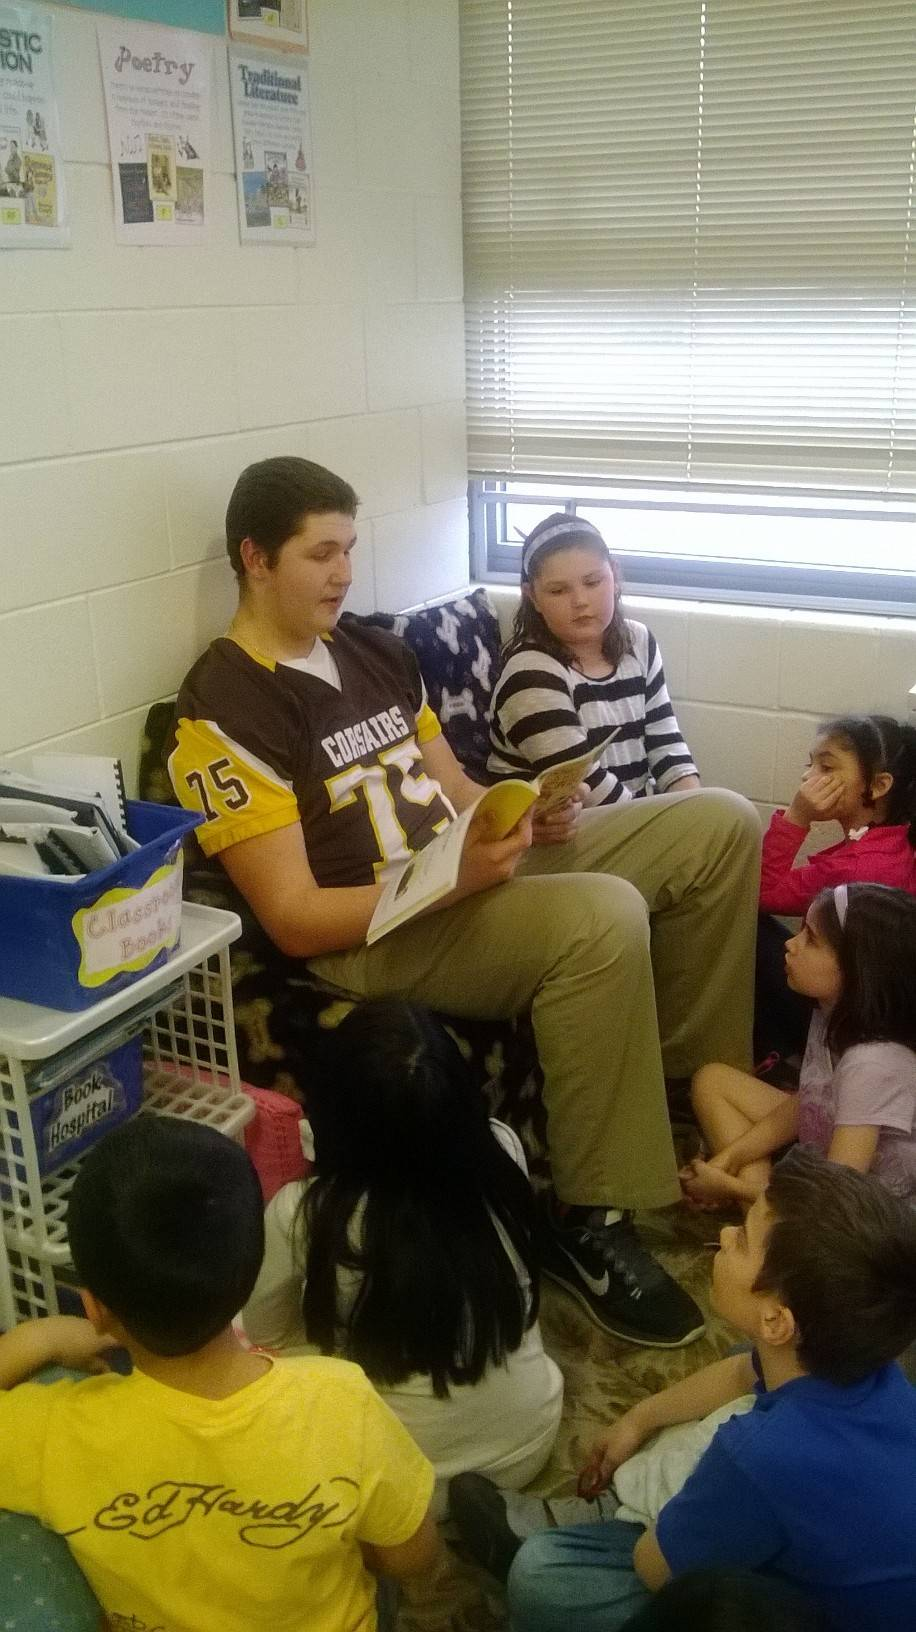 Carmel sophomore football player Sean Foster reads to second-graders at Freemont Elementary School in Mundelein. Foster's sister, Rylan, is sitting next to him.